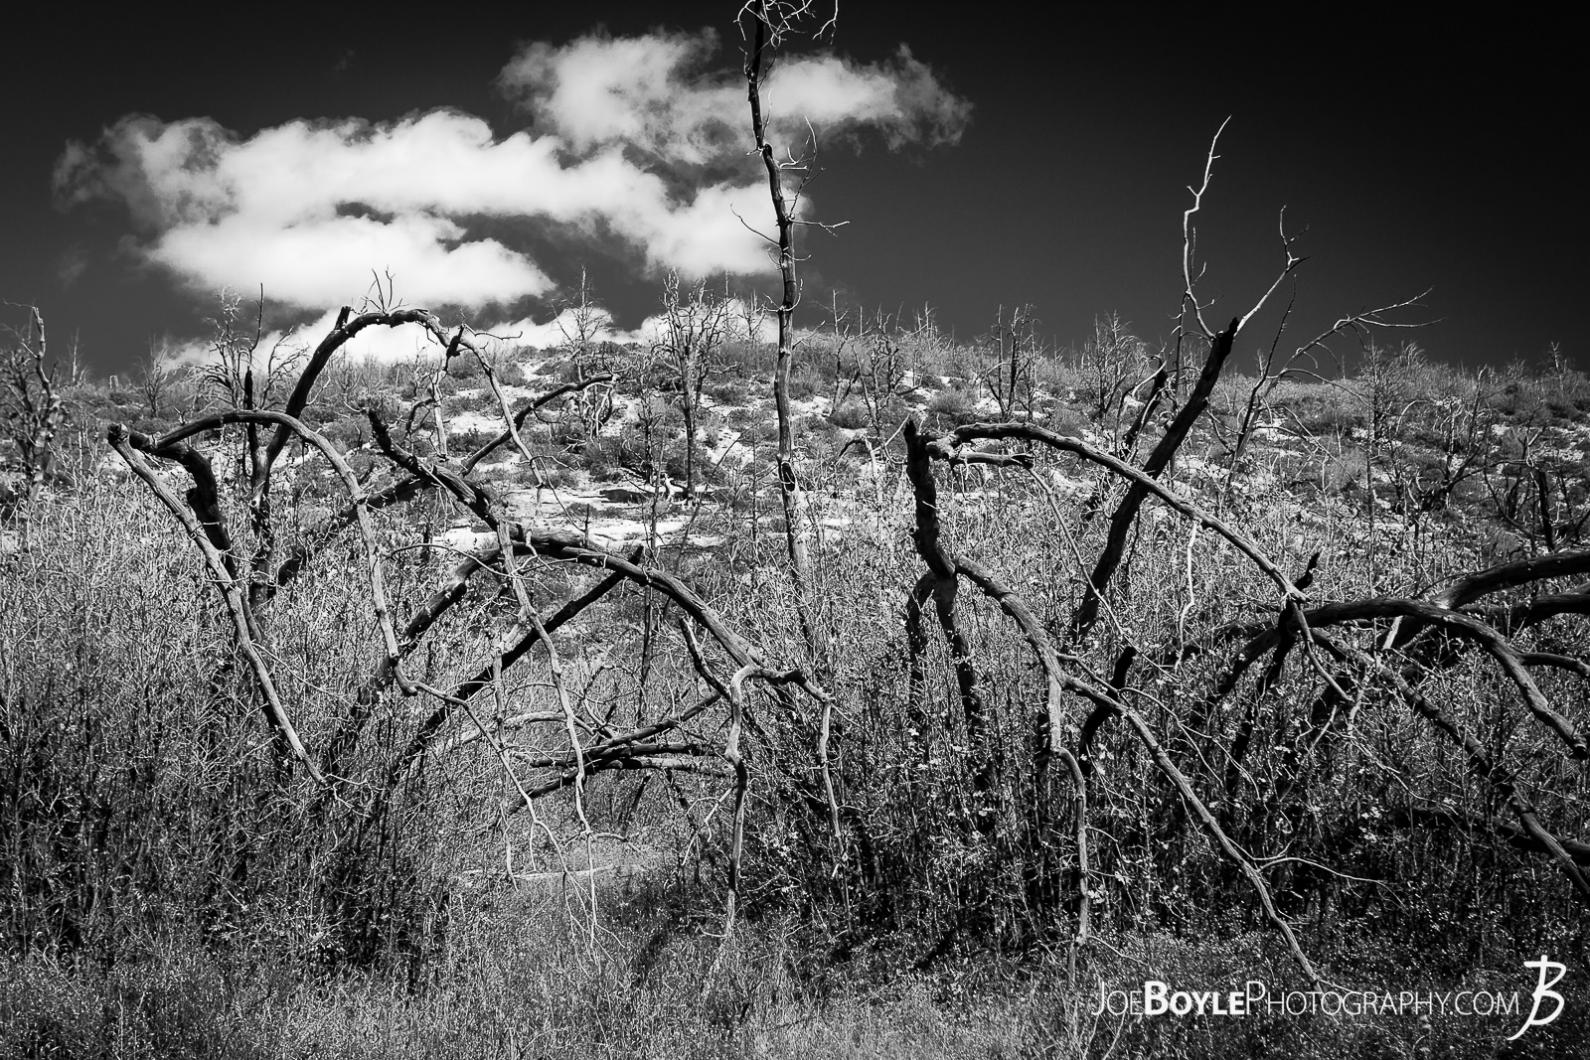 gnarly-withered-surreal-cool-looking-trees-black-white